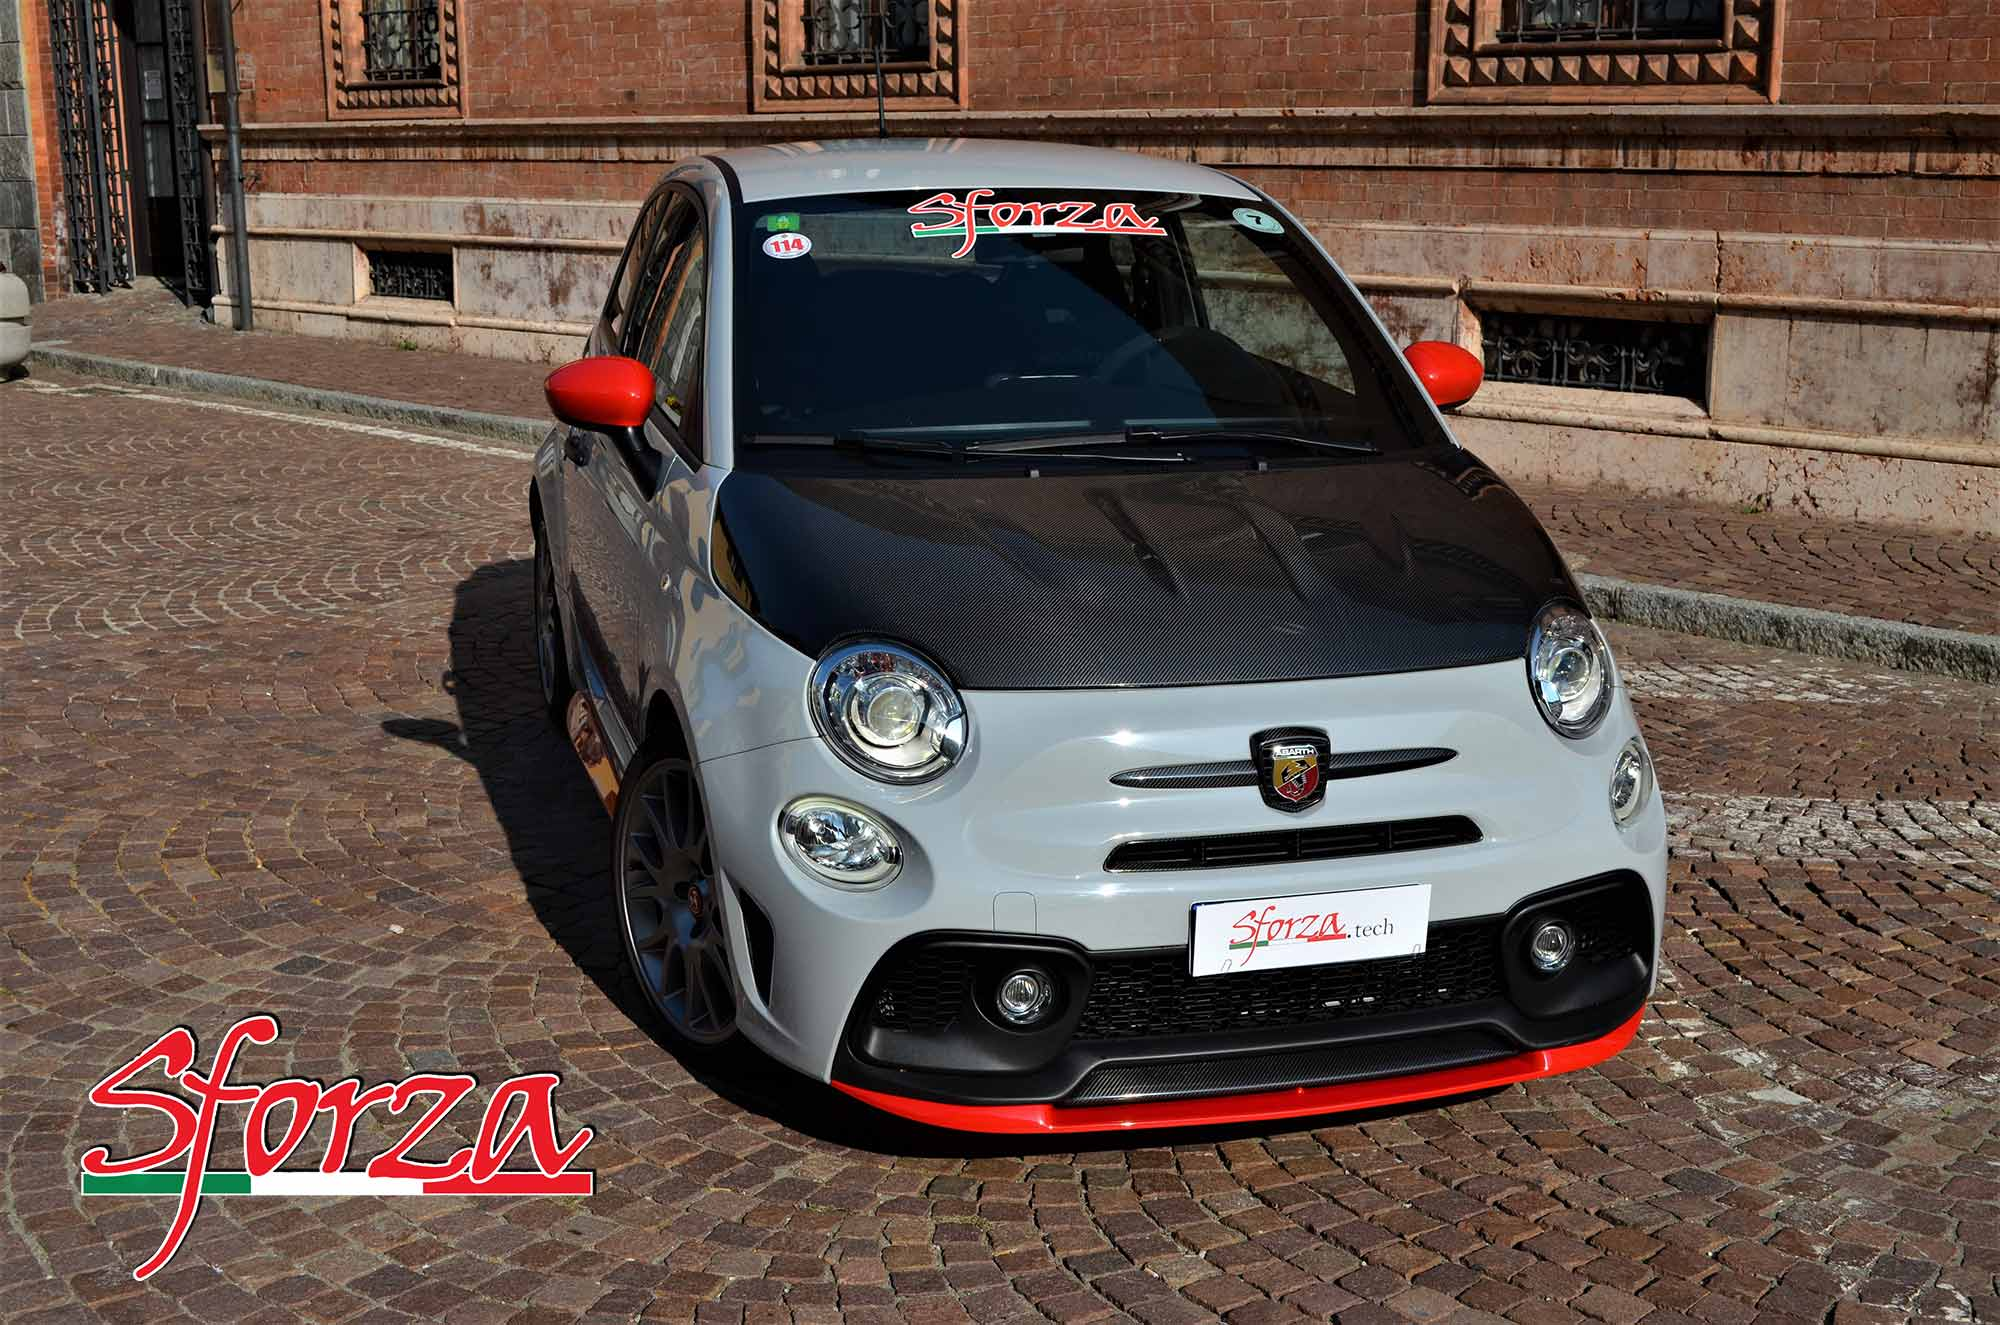 fiat 500 x abarth 2016 with Abarth 595 Spoiler Anteriore Vetroresina on Fiat 124 Spider further Fiat 500x Abarth Rendering Shows Up ing Hot Crossover 98893 also Abarth Punto Evo Esseesse model 10883 also Black White Fiat 124 Spider Abarth Car   Image also Abarth 595 Spoiler Anteriore Vetroresina.